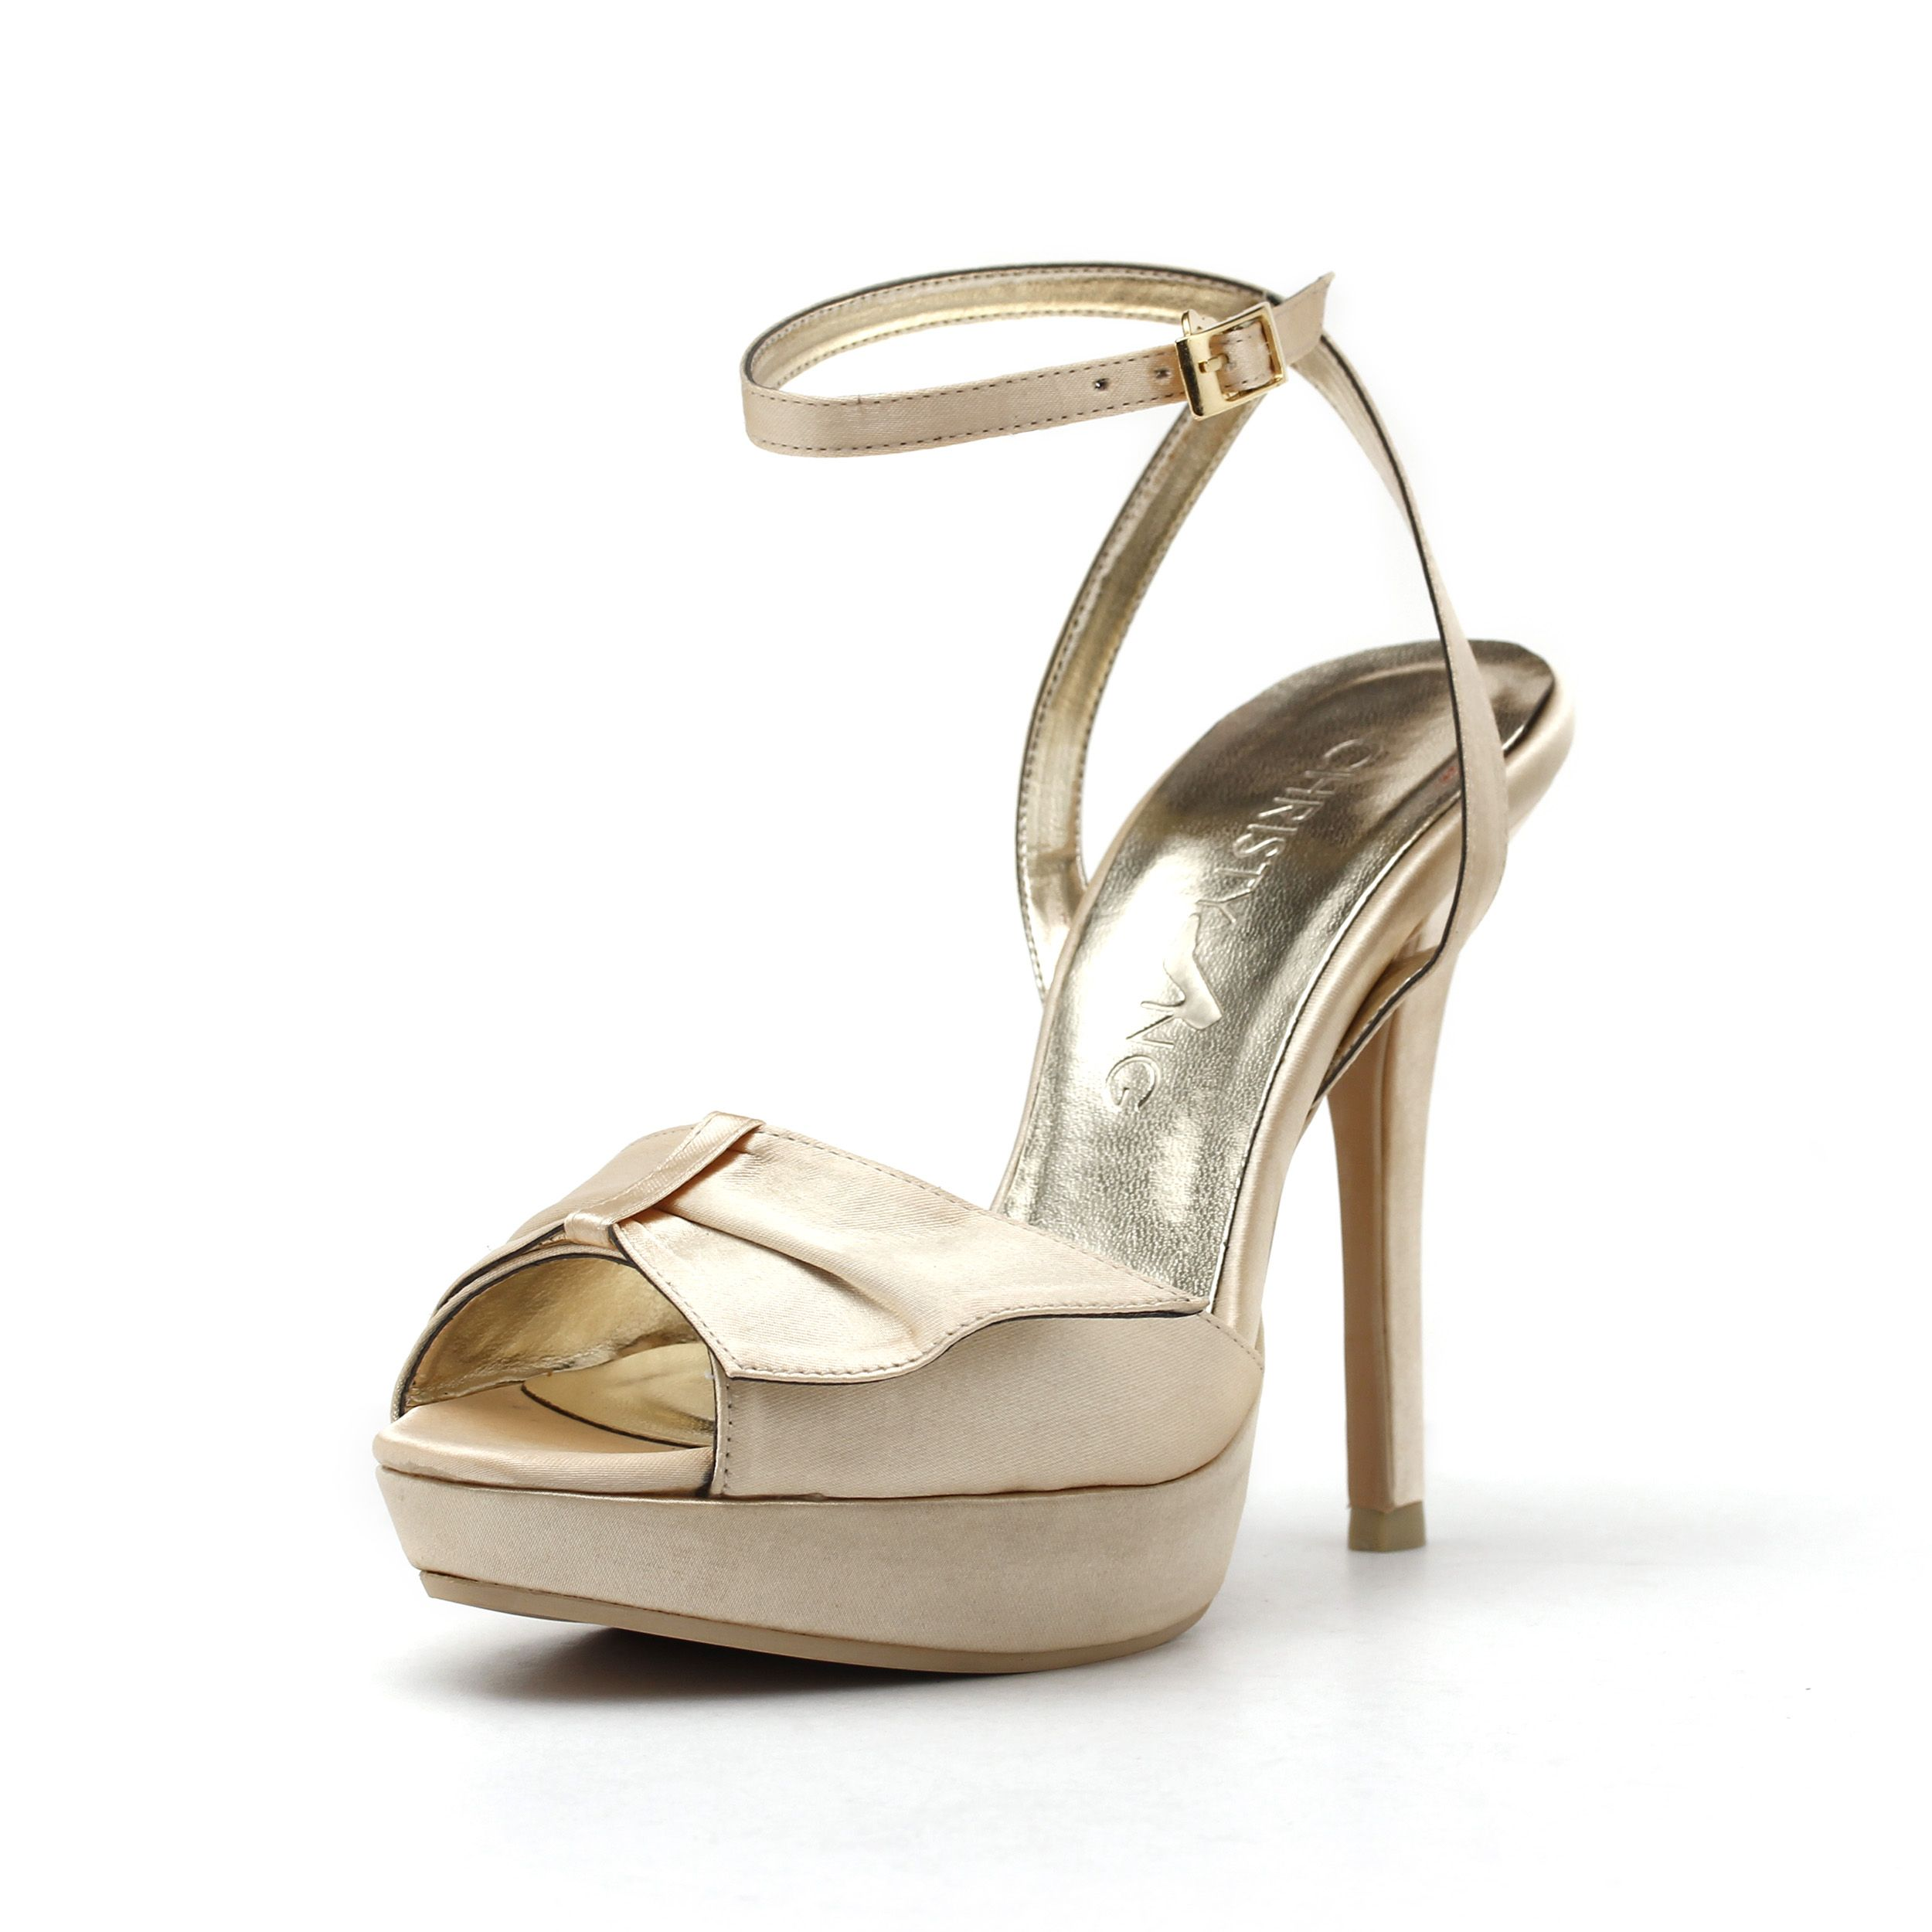 Christy Ng's new design of Lover Girl. Simple yet elegant. Strap on this shoe to complete your look for an evening occasion. Desire for more shoe choices, visit http://www.ChristyNg.com